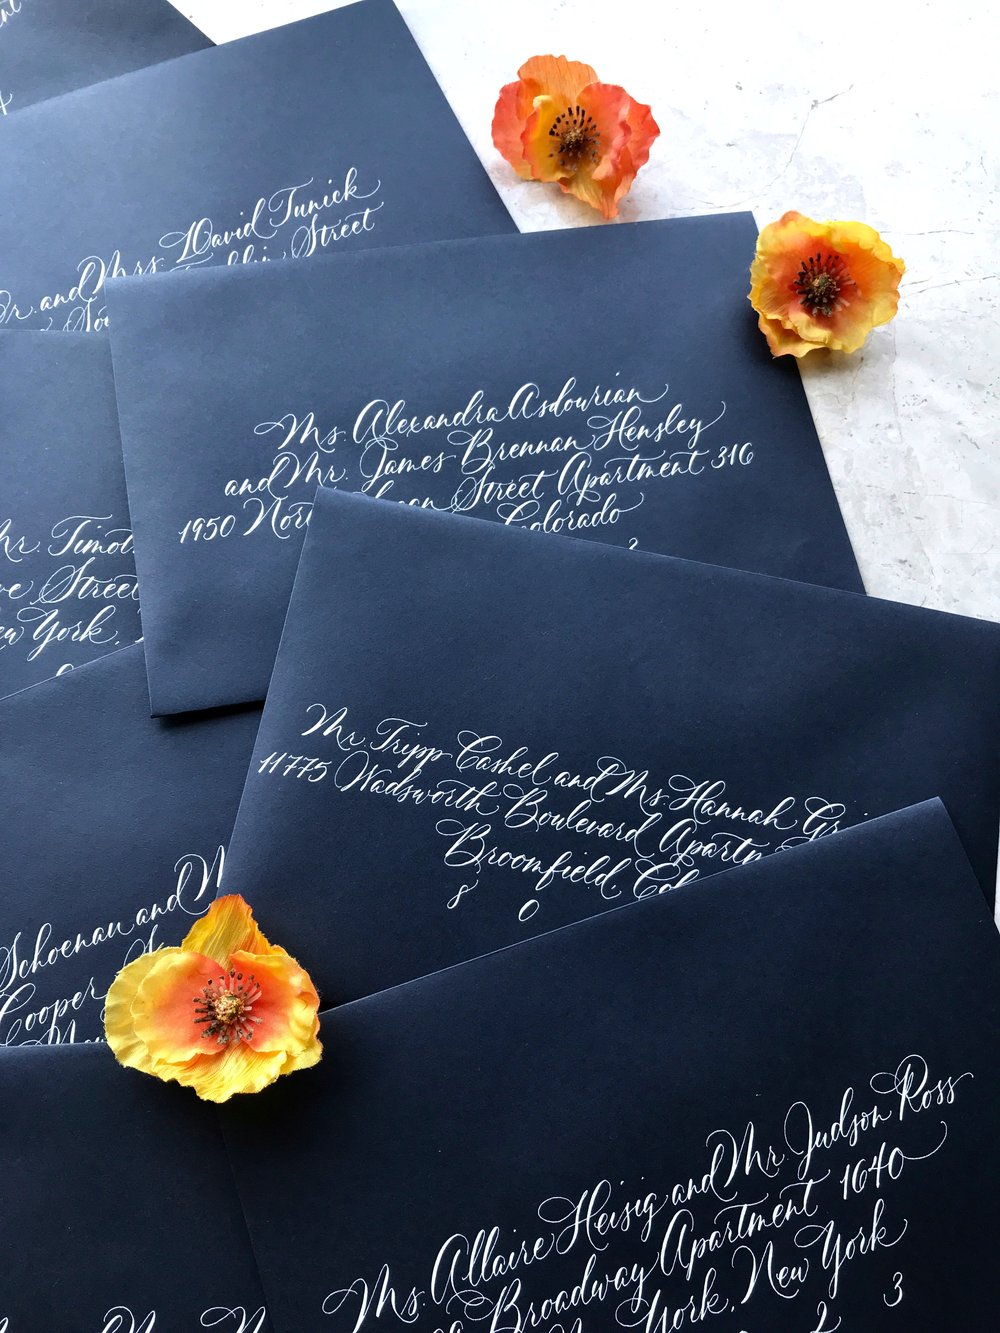 A seasoned calligrapher - may have their calendar booked 3-6 months in advance or more…